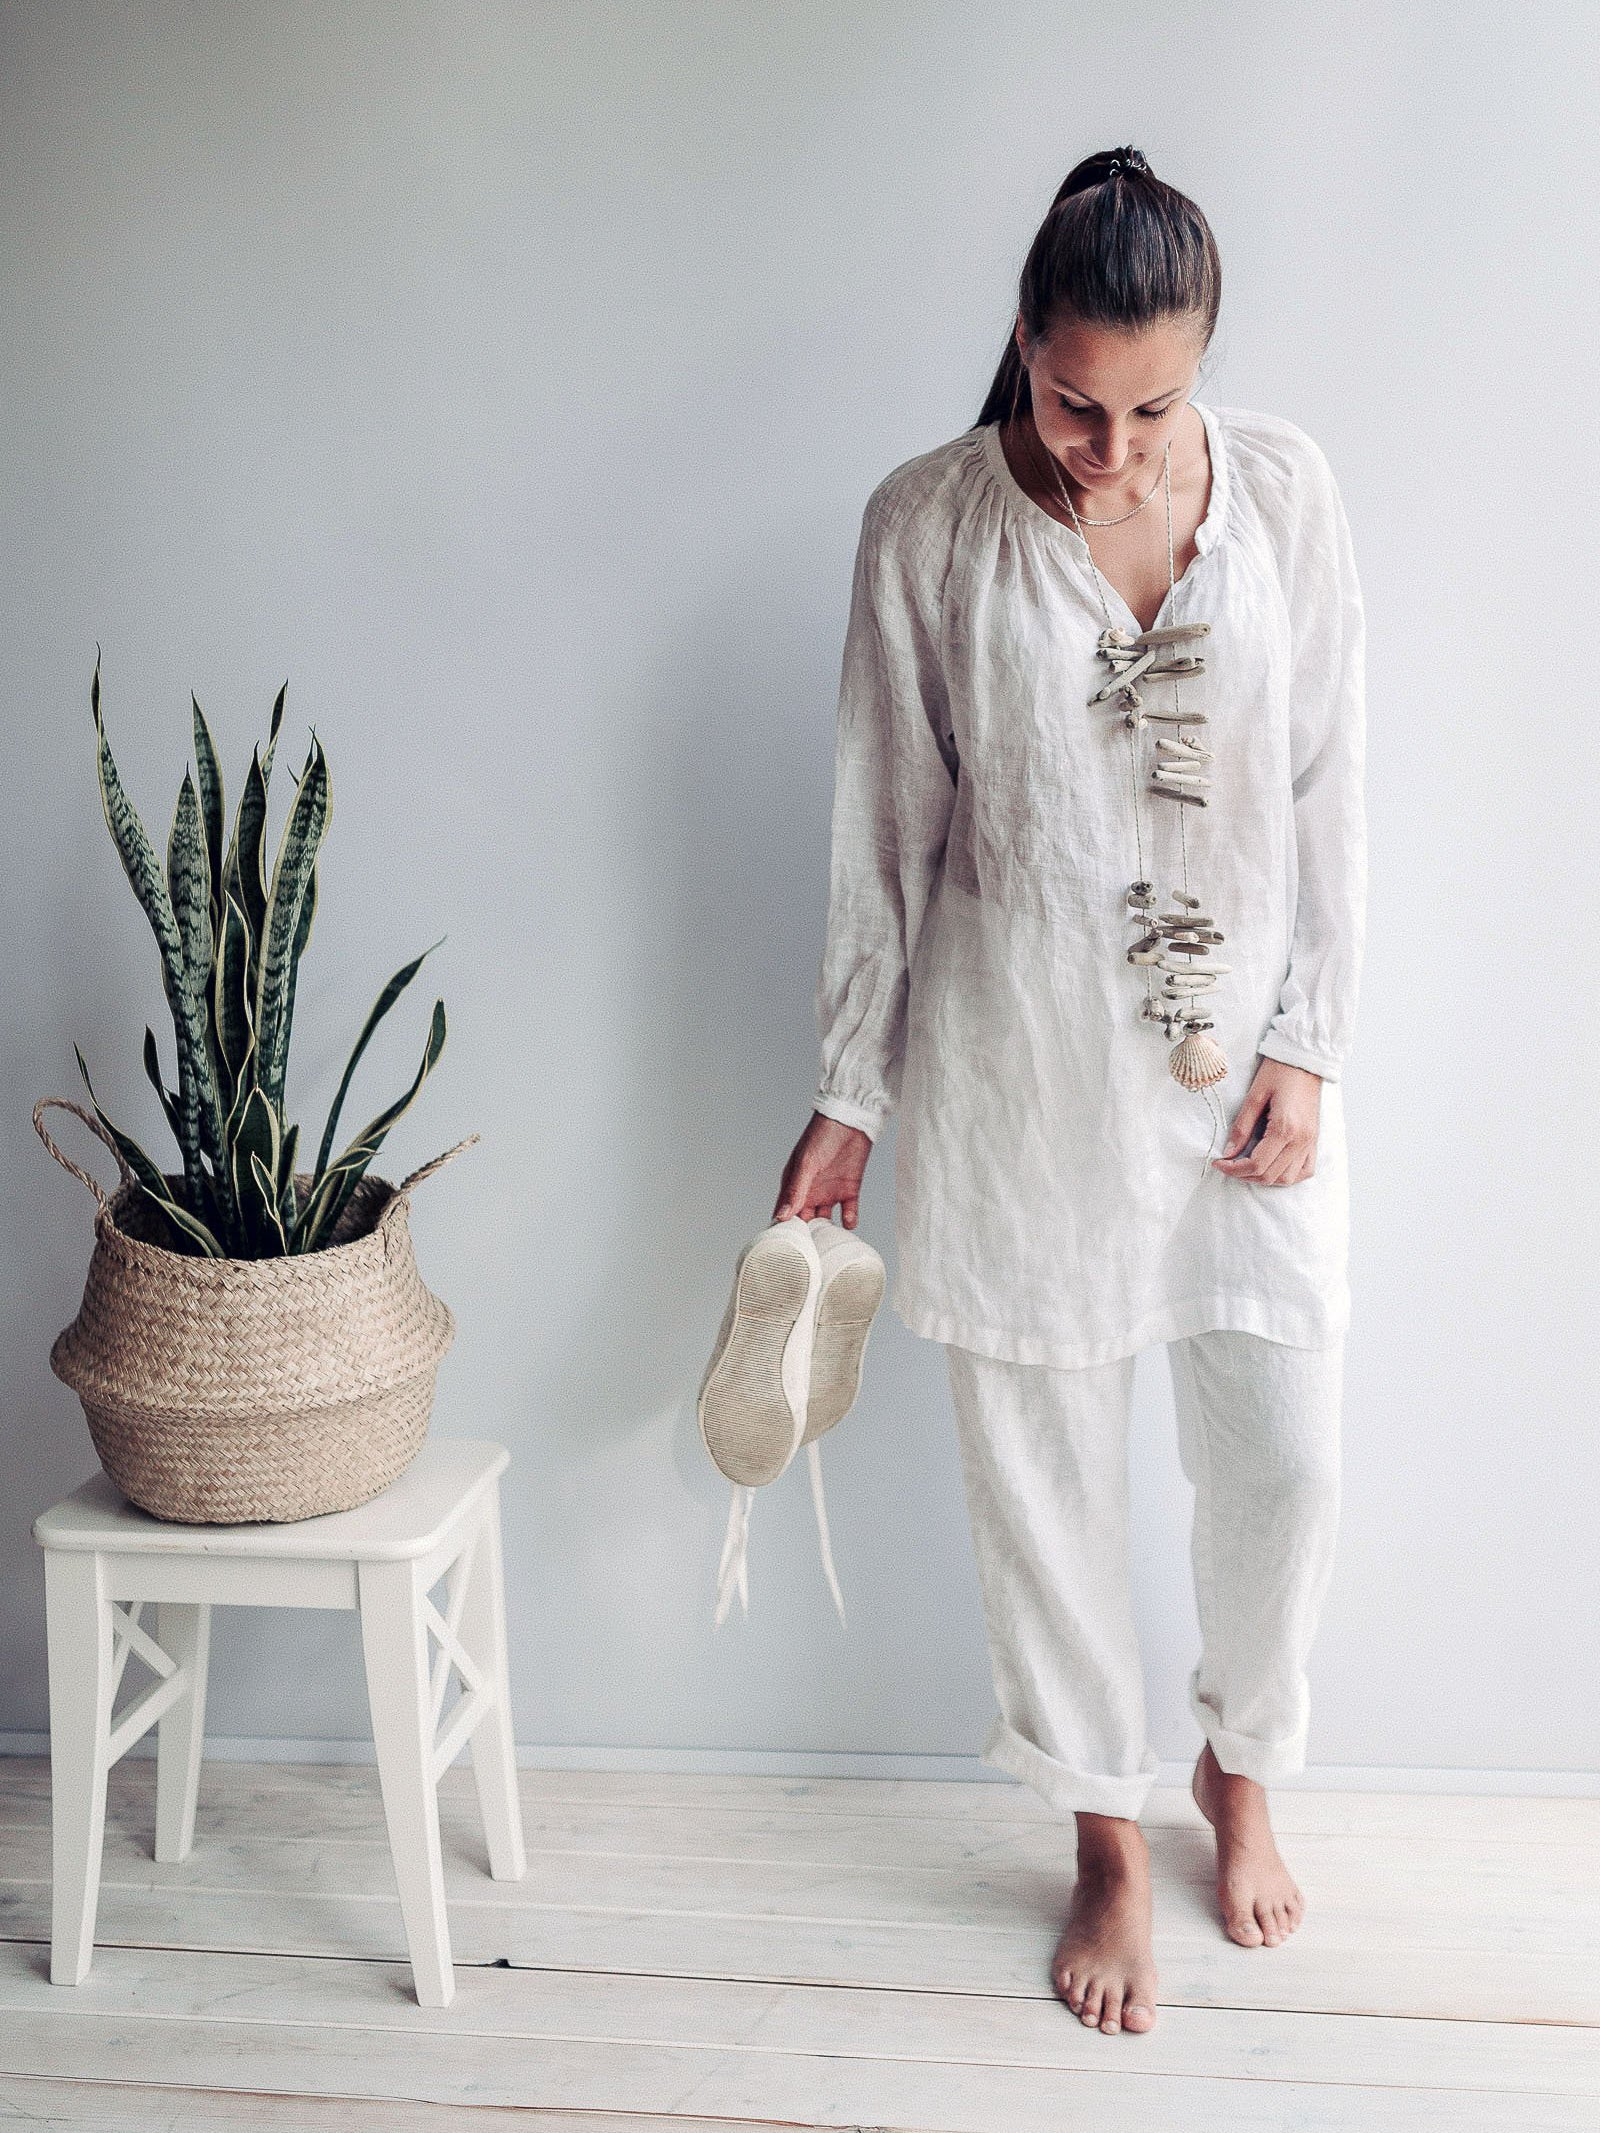 Linen Shirt for Women, Gauzy Lightweight Boho Top-Linenbee